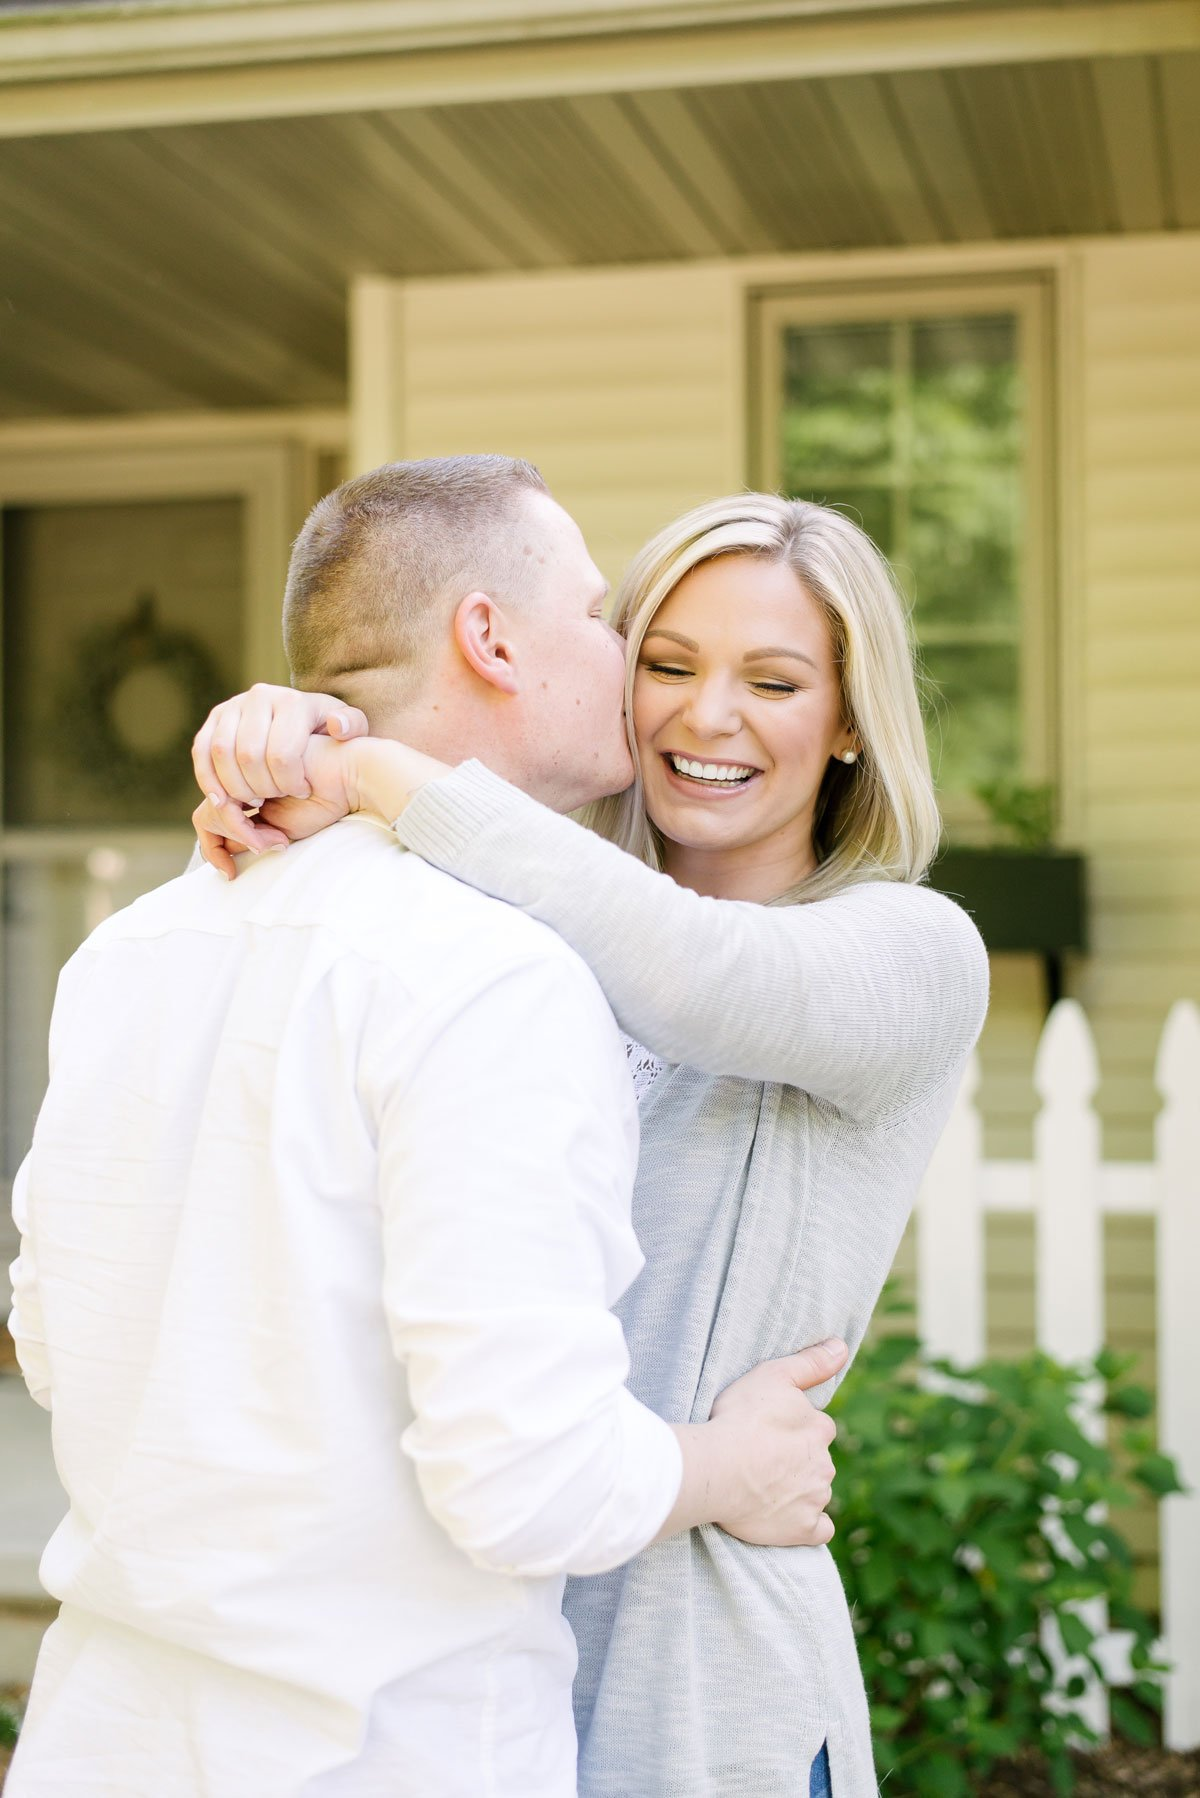 couples lifestyle session at home Fond du Lac, Wis.